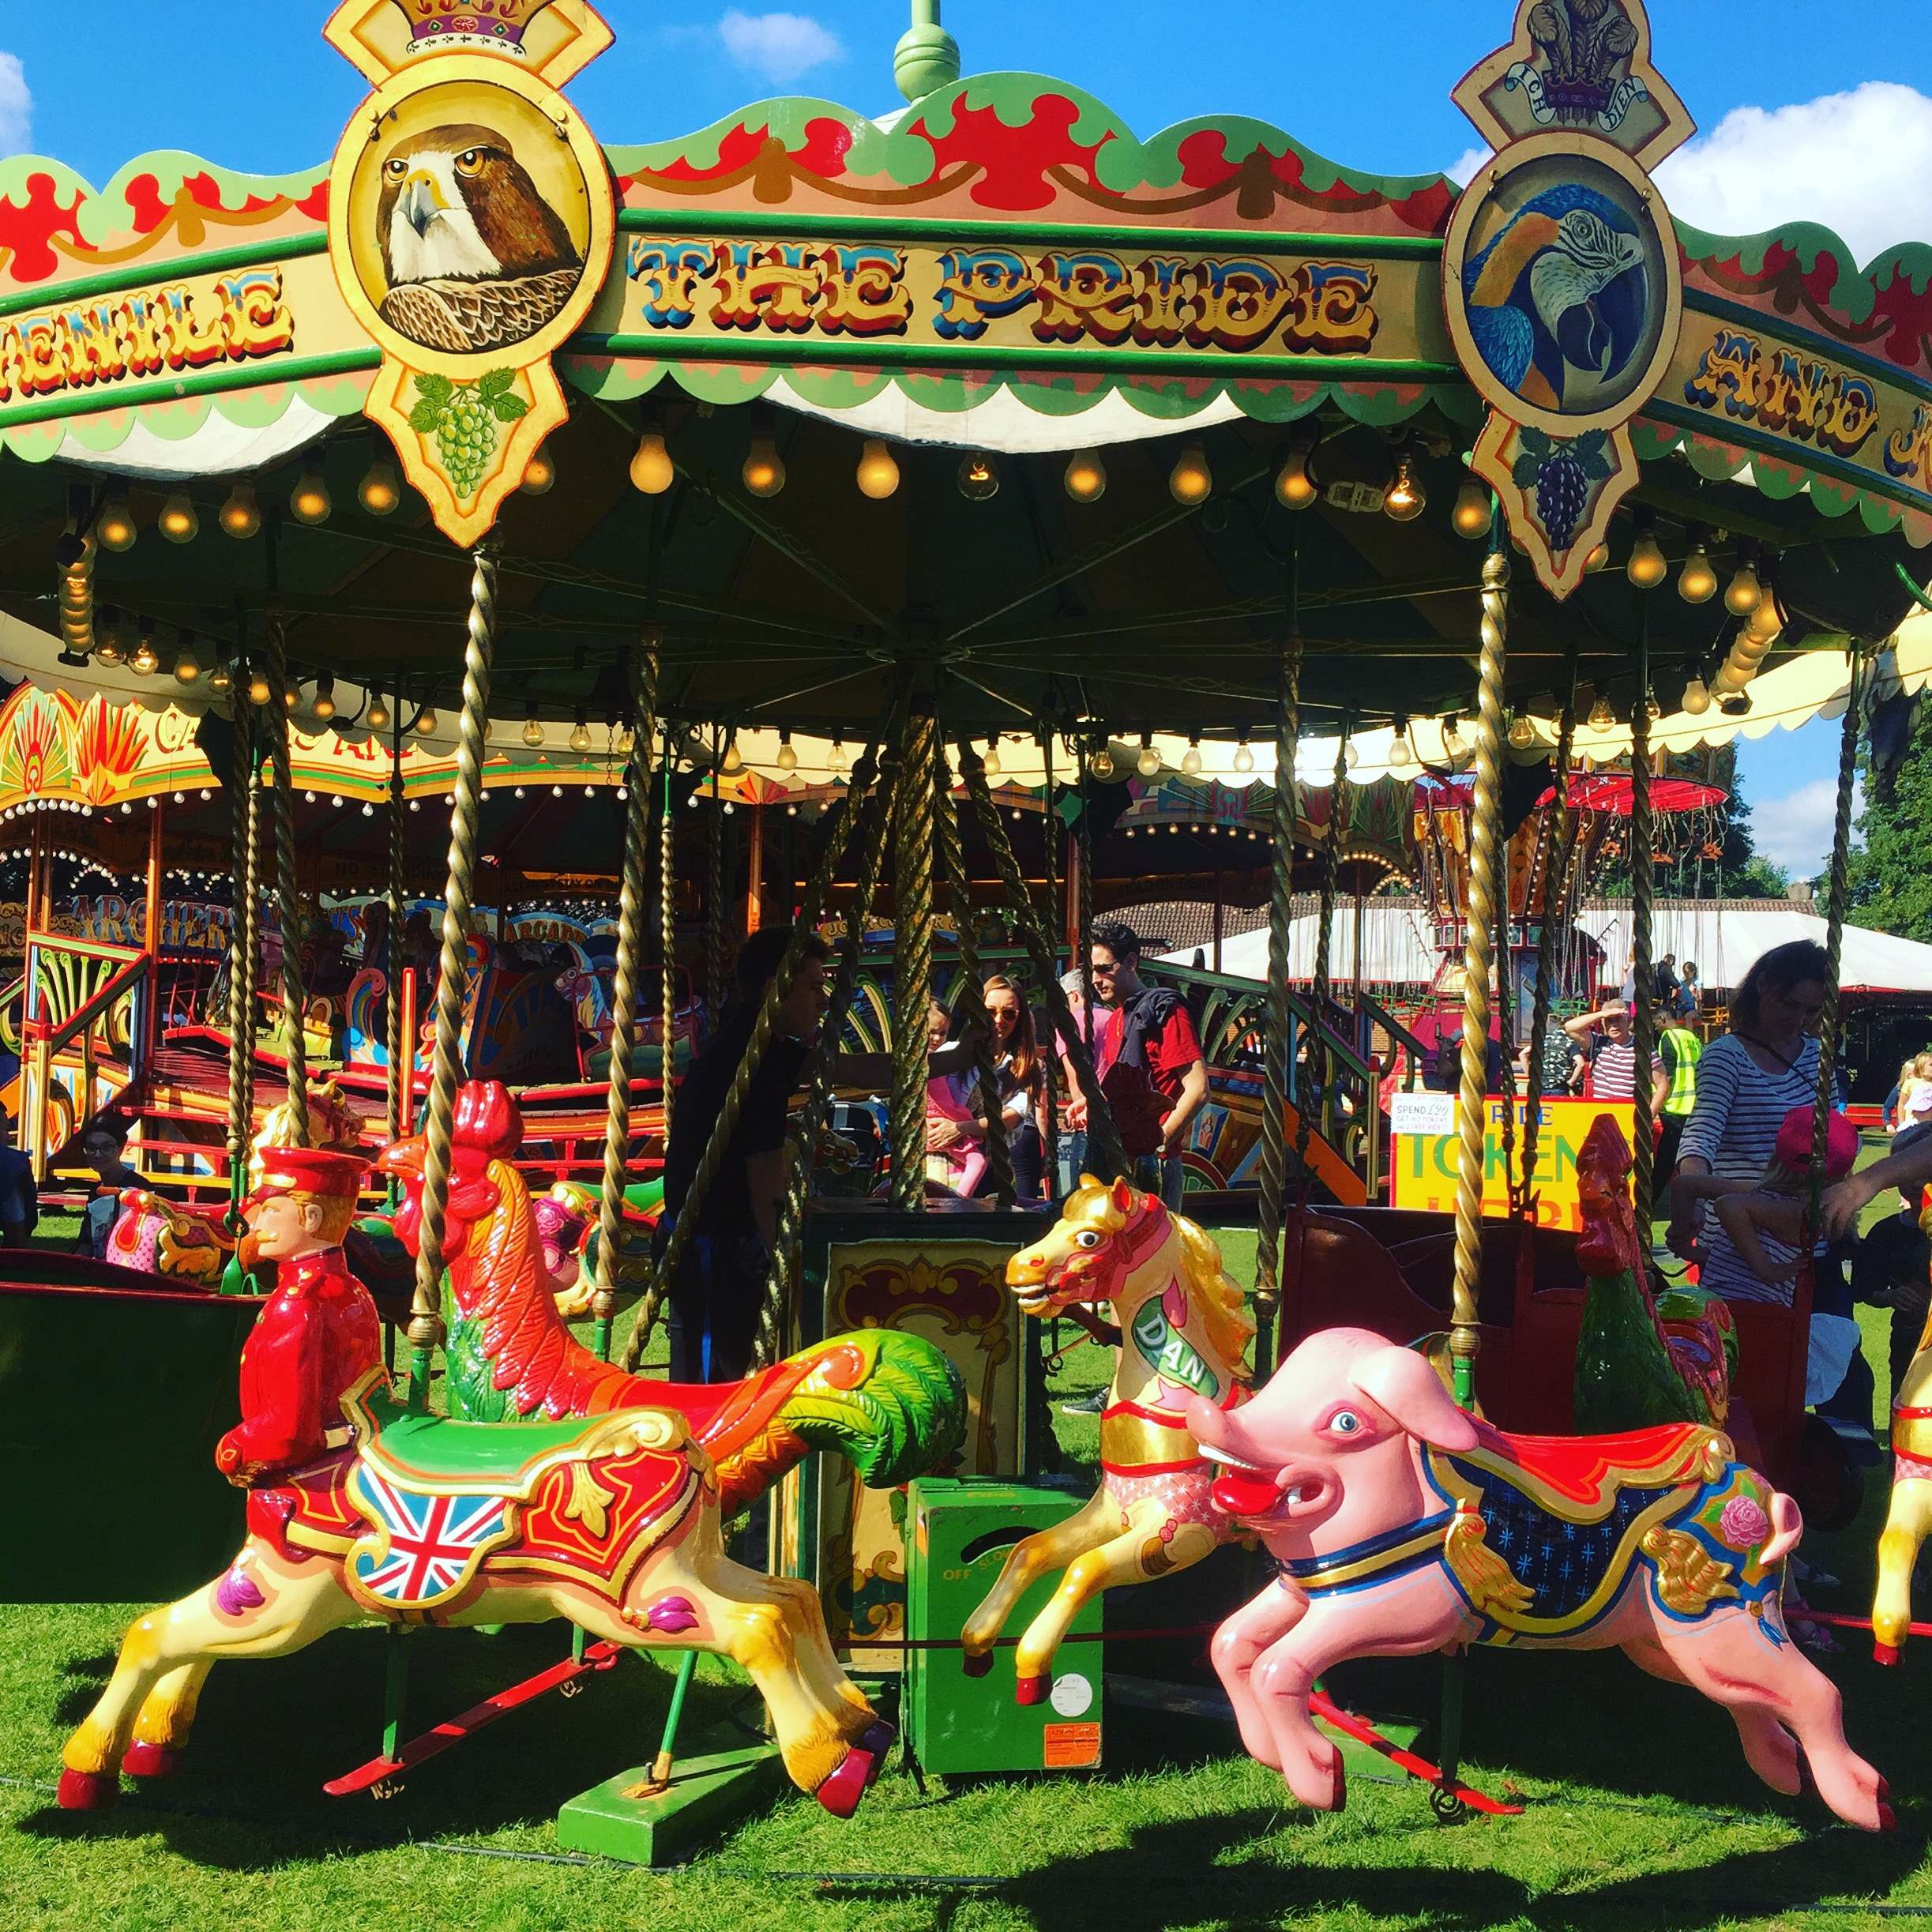 carters steamfair